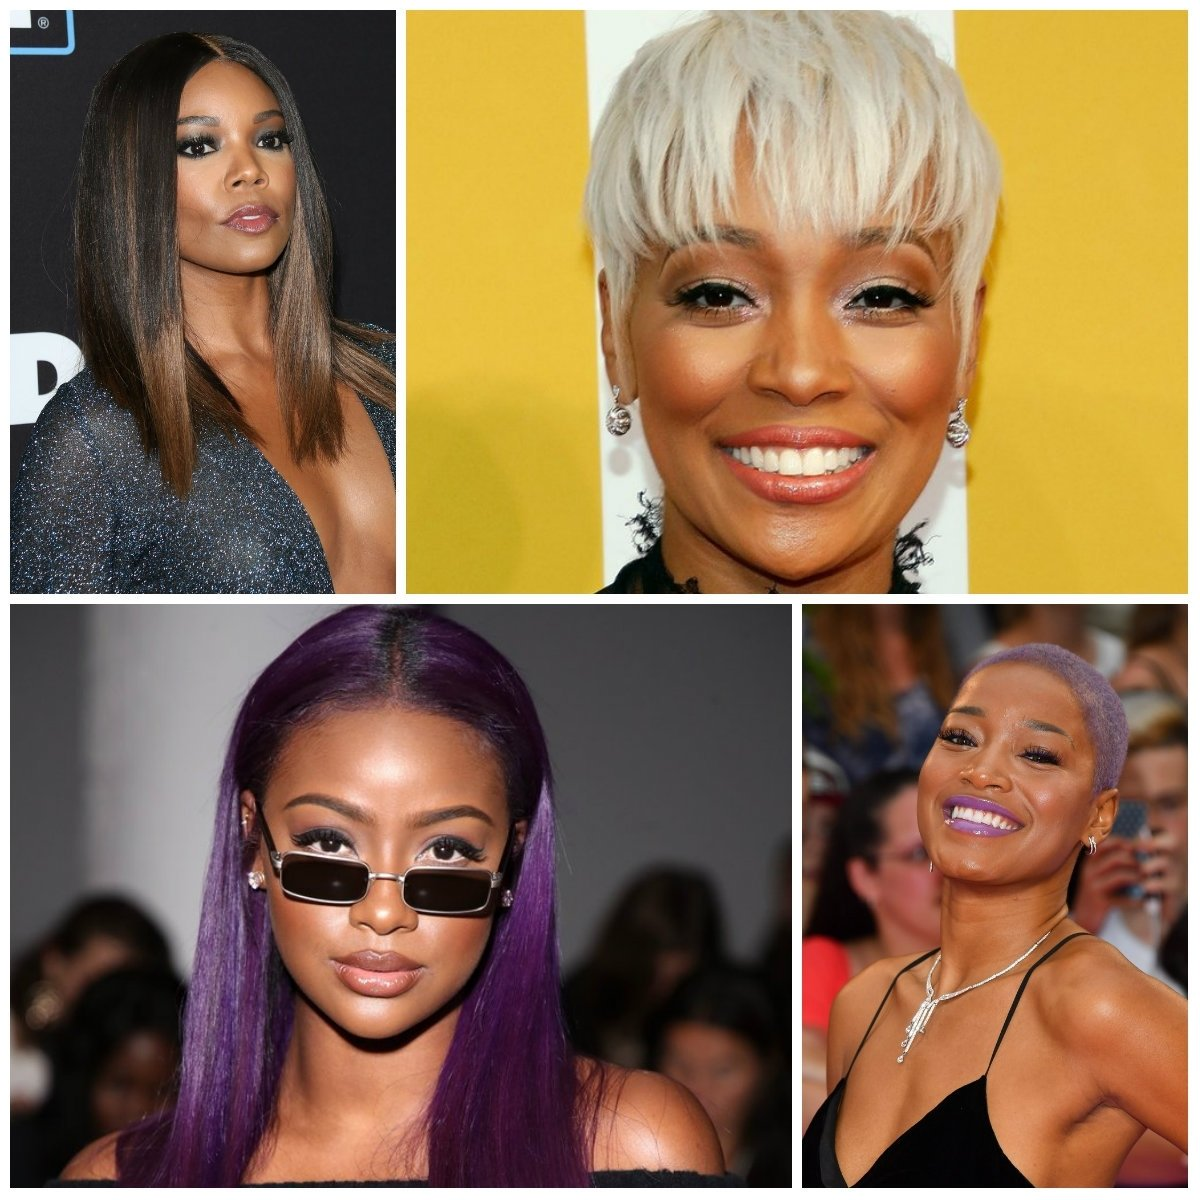 10 Great Hair Color Ideas For Dark Skin Tones hair colors for dark skin tones in 2018 best hair color ideas 3